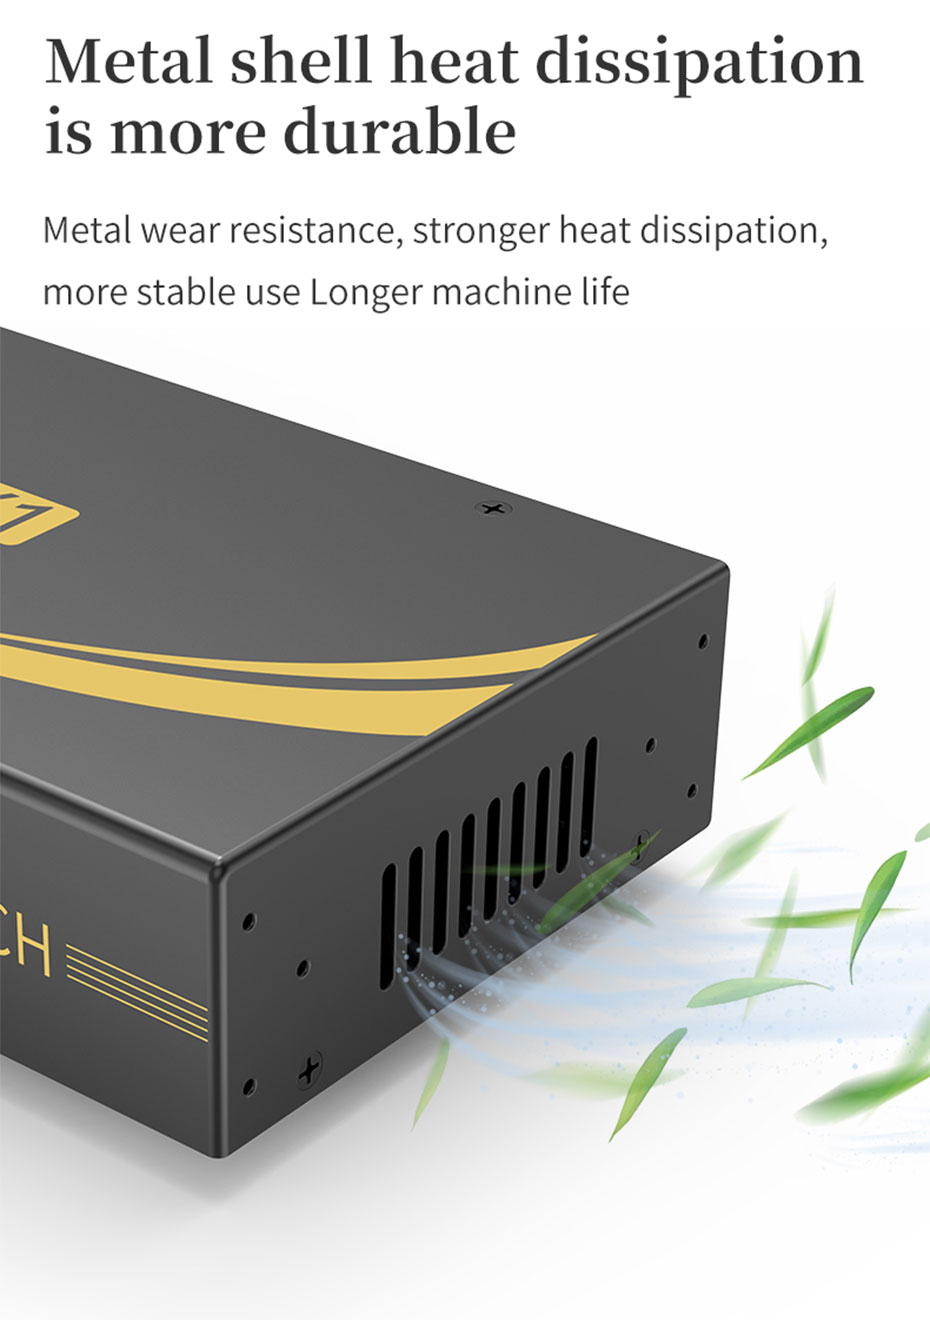 HDMI KVM switch 8 in 1 out 81HK adopts all metal body design, durable and easy to dissipate heat